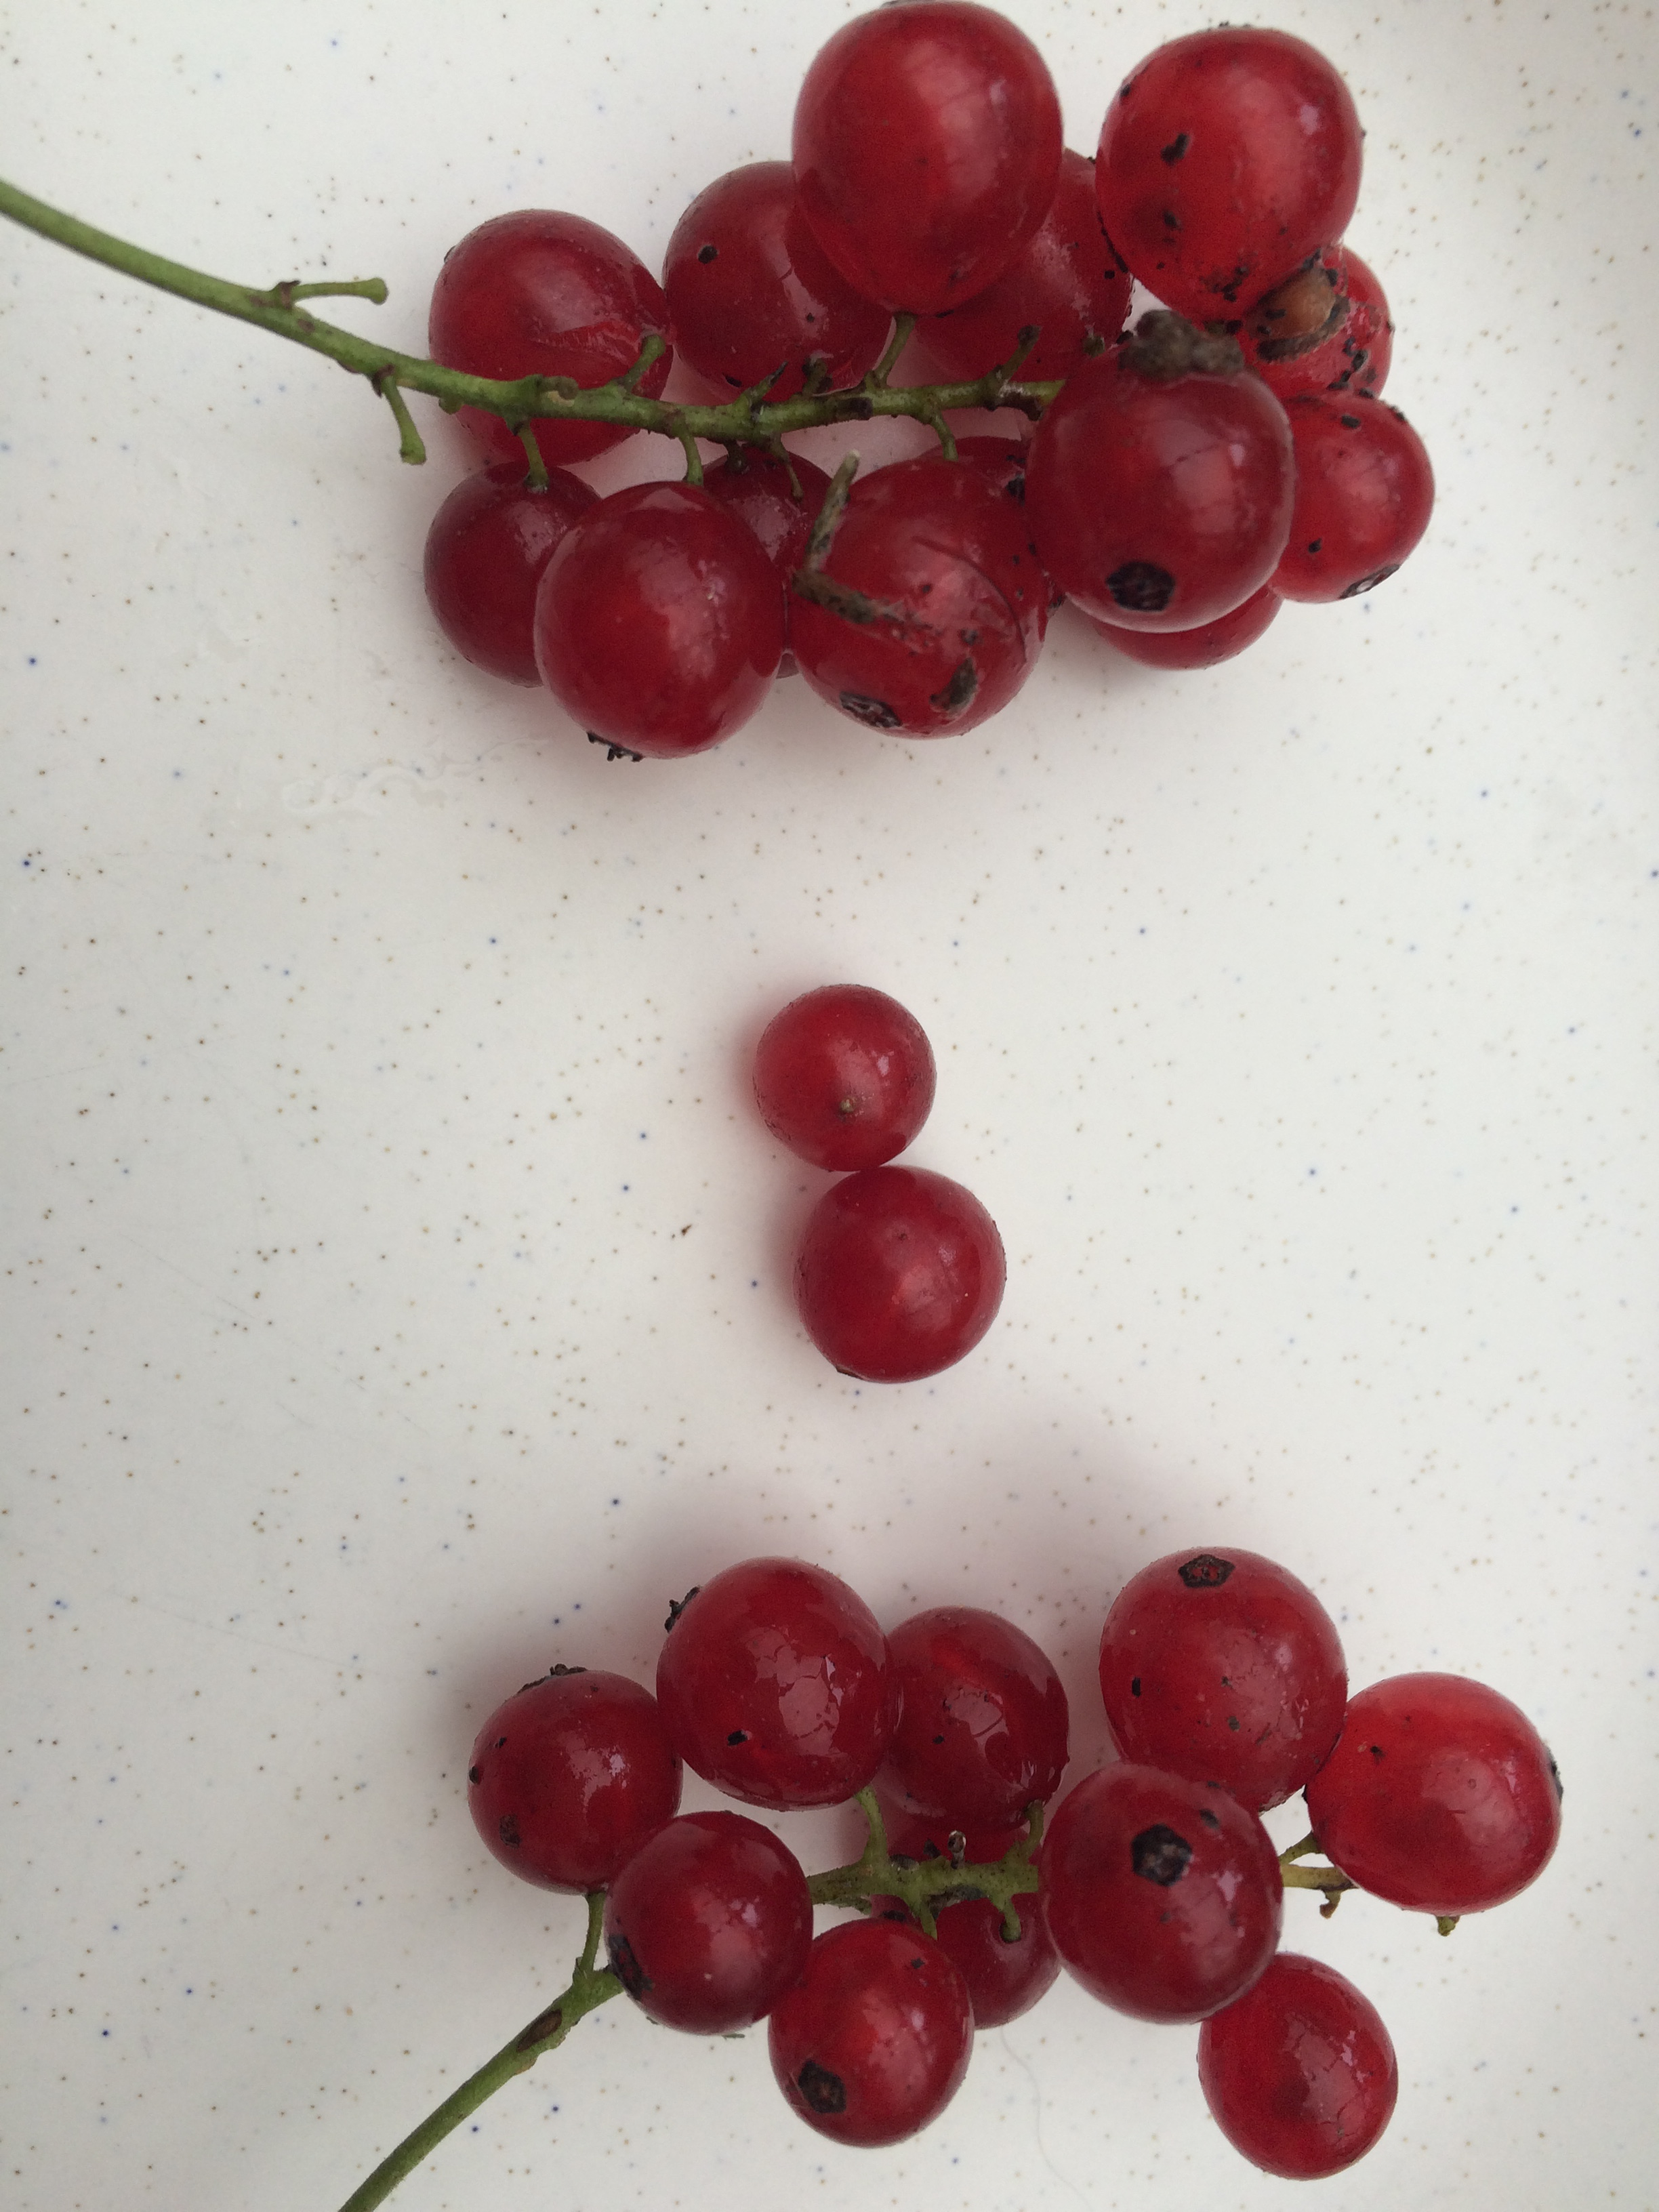 Redcurrants from surrey